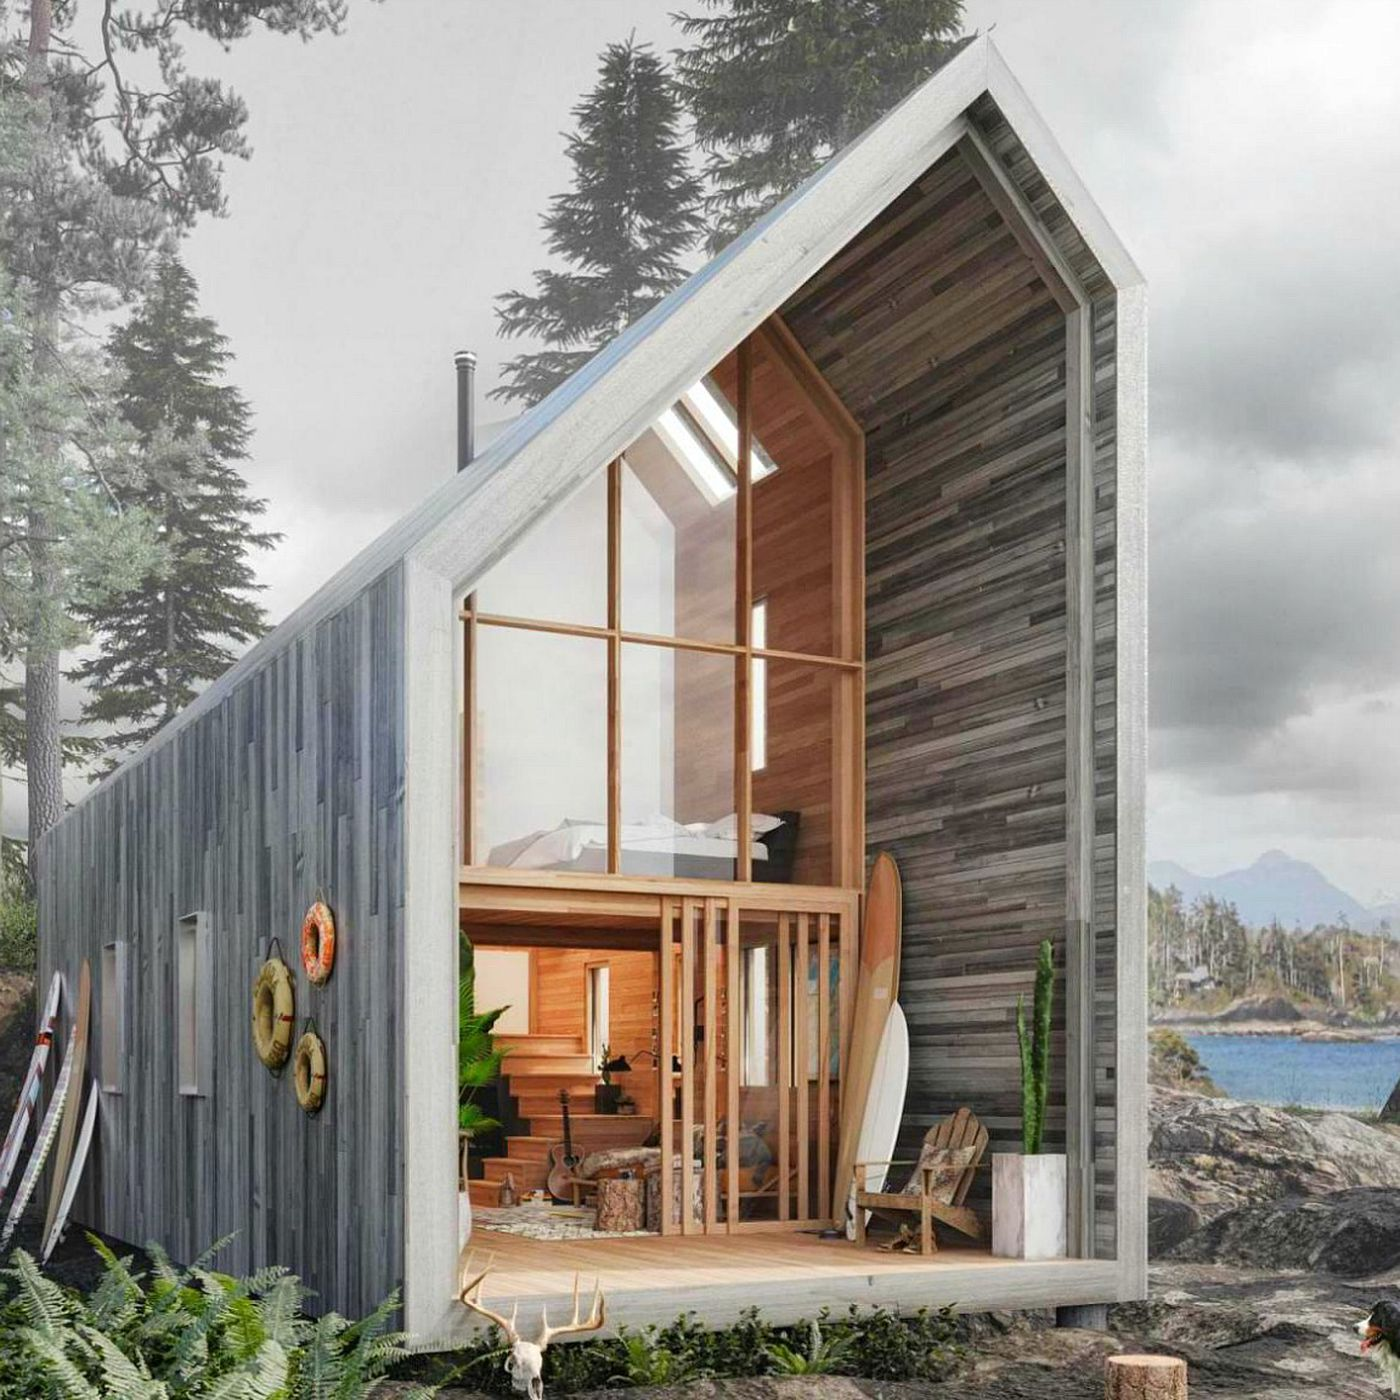 Prefab home offers nature getaway, flatpack-style - Curbed